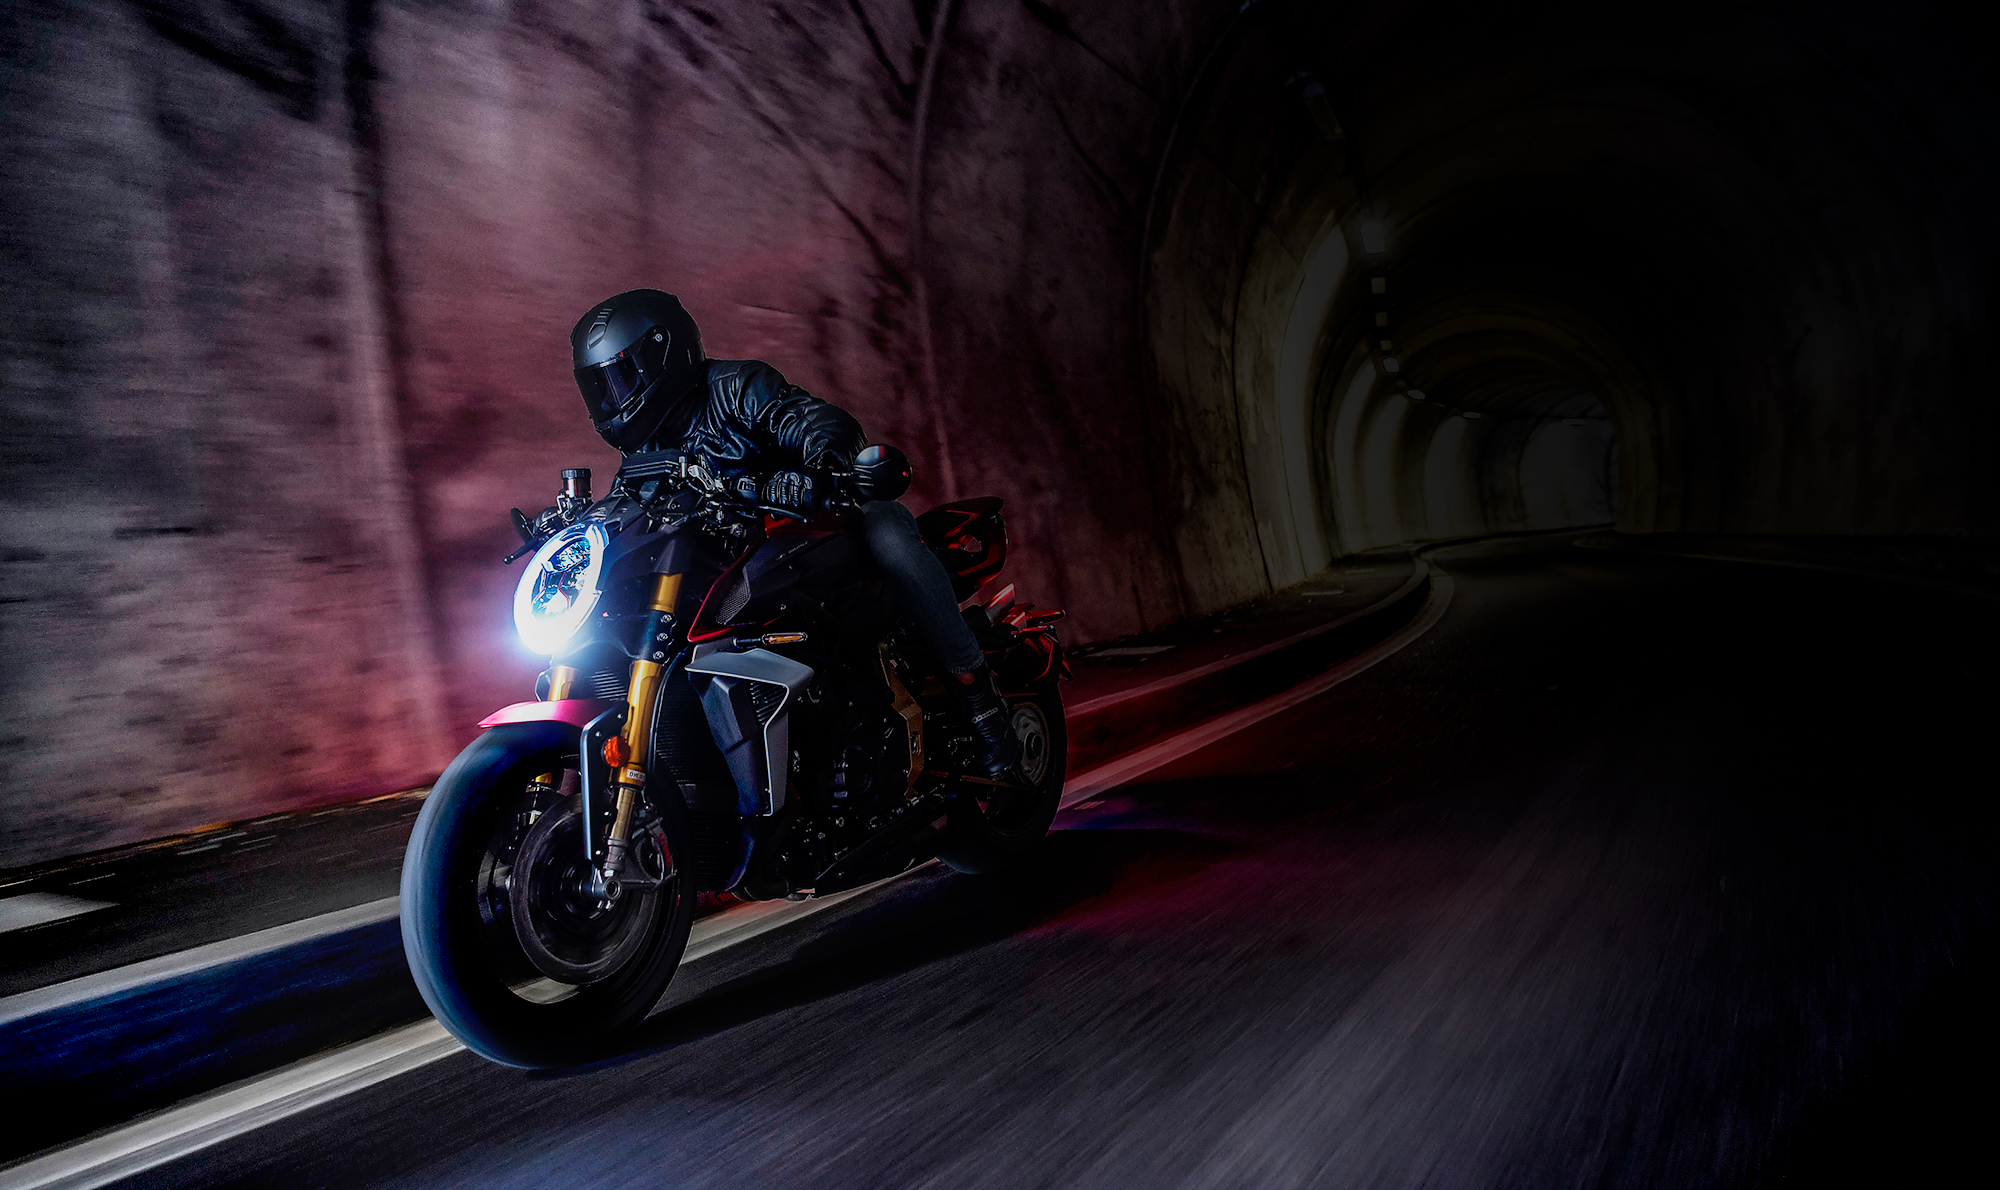 mv agusta brutale 1000 motorcycle riding through a dark tunnel